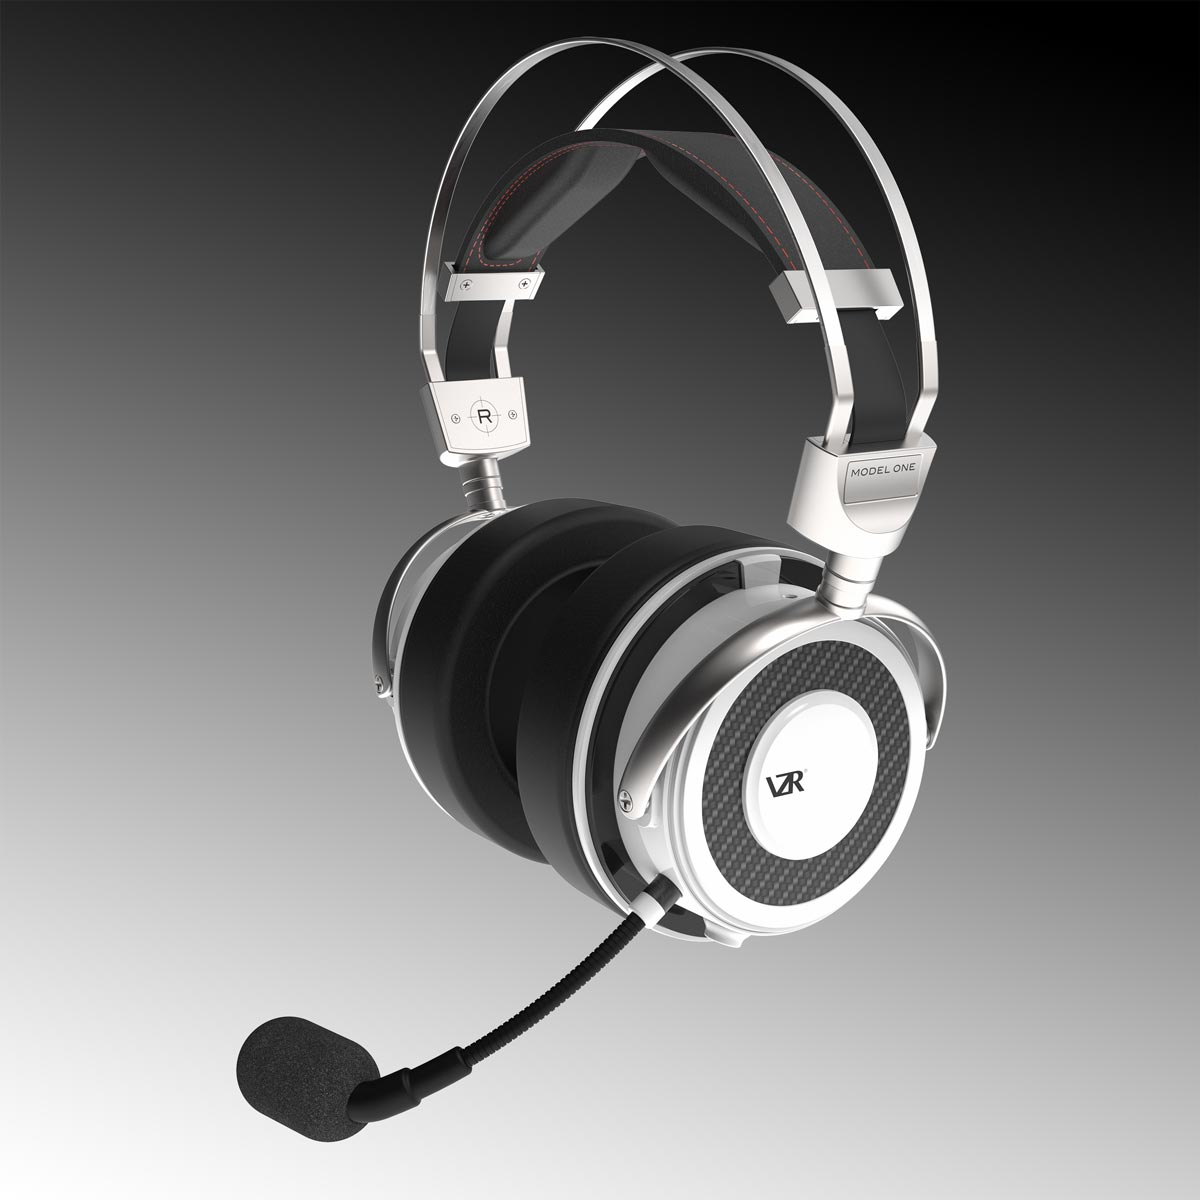 VZR Model One headset for gamers and audiophiles